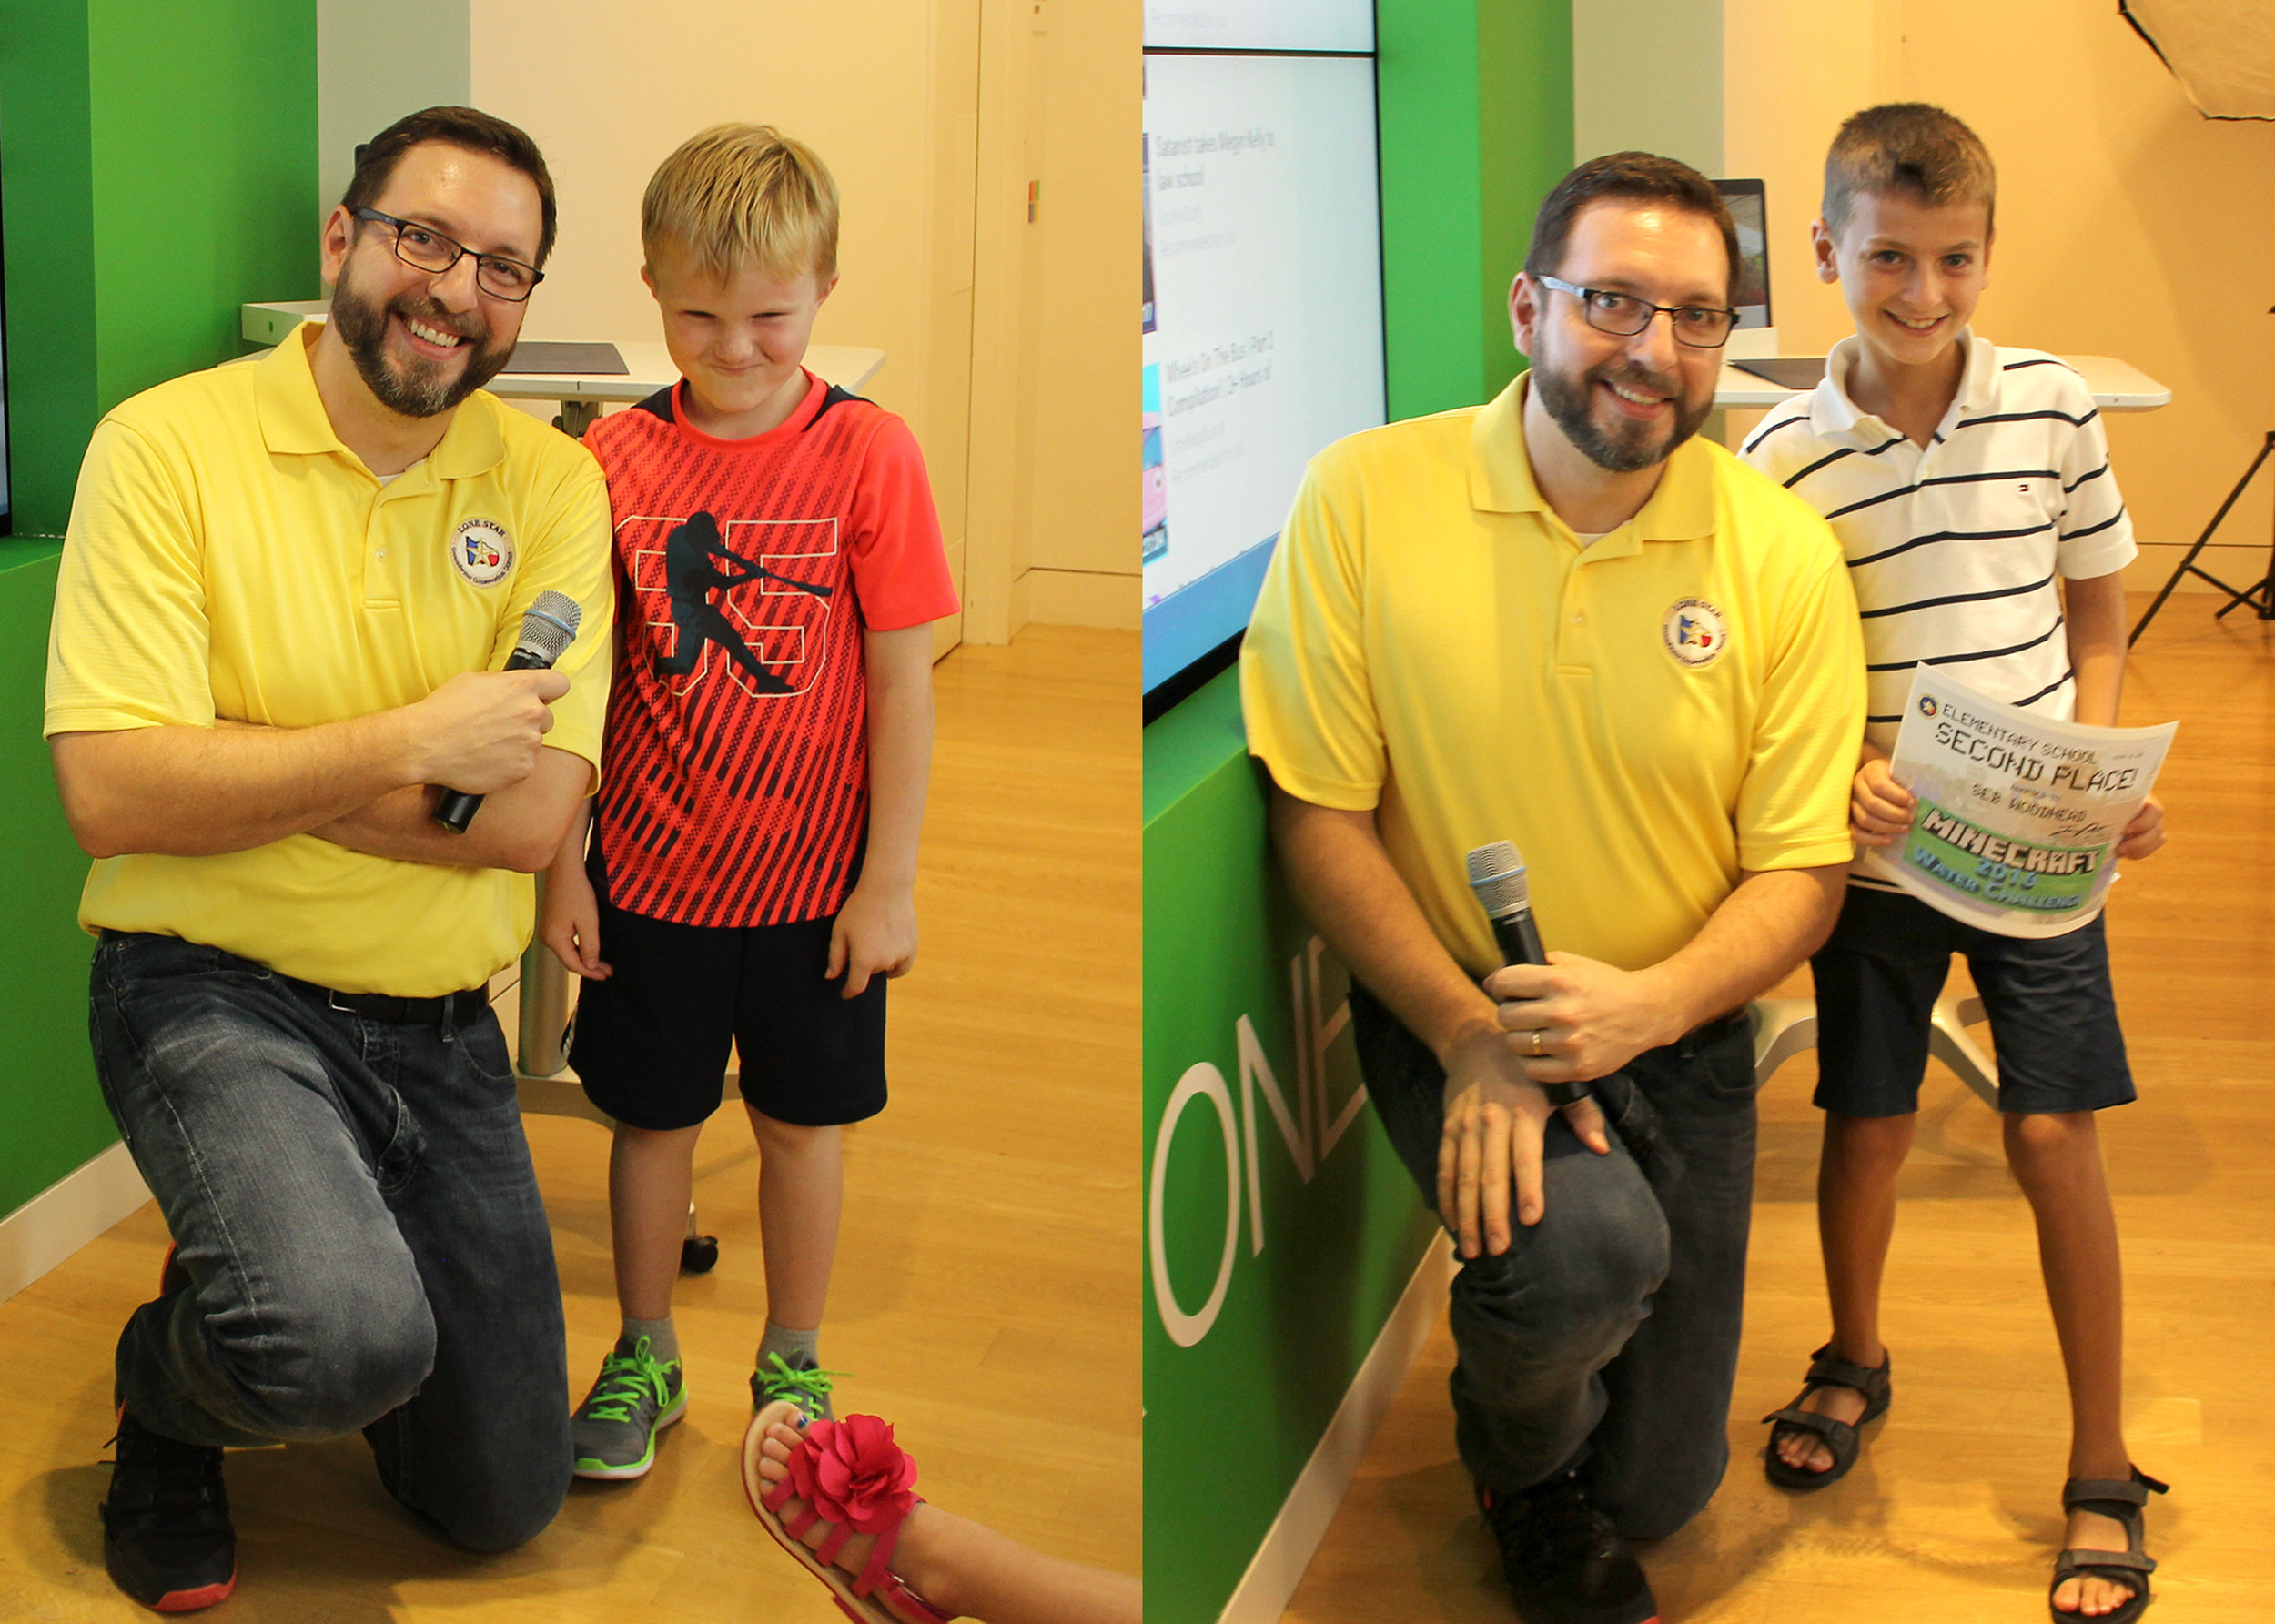 LSGCD's 2016 Minecraft Water Challenge winners—Elementary Group: James Ridgway, Jr., LSGCD education/public awareness coordinator, wearing the yellow shirt, poses with, pictured left, 3rd-place winner, Christopher Holmes, Kaufman Elementary, and pictured right, 2nd-place winner, Seb Woodhead, David Elementary. Not pictured is 1st-place winner, Zander Staines, home school.